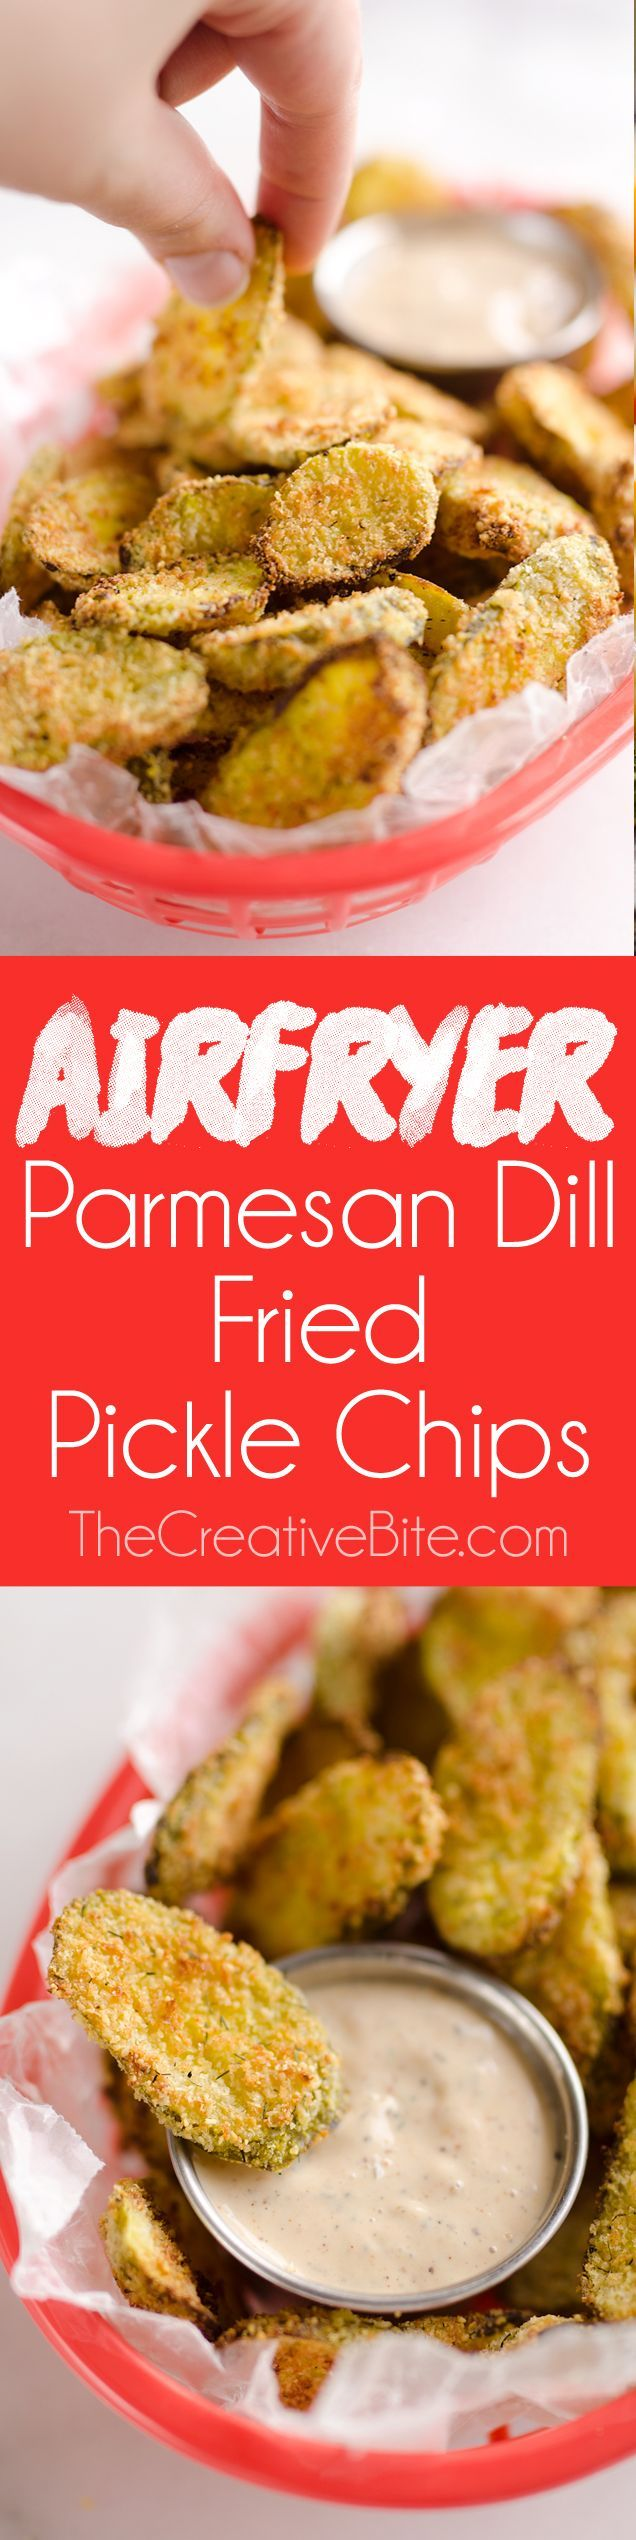 Airfryer Parmesan Dill Fried Pickle Chips are a quick and easy 5 ingredient appetizer made extra crunchy in your Airfryer without all the fat from oil. This low-fat snack is sure to satisfy your craving for something salty! #Airfryer #Pickle #Snack (Low Carb Easy Baking)